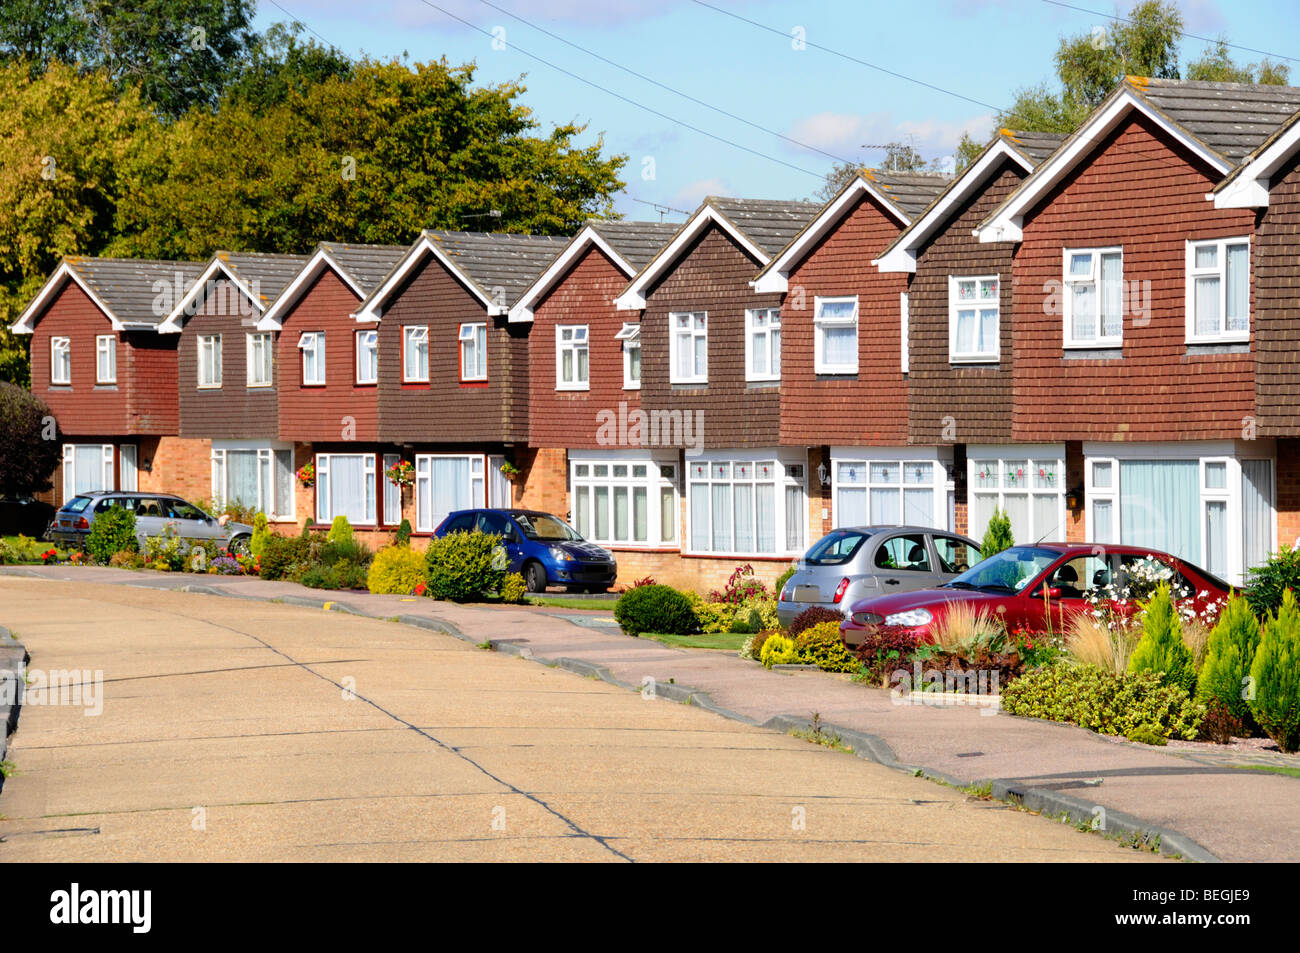 Row of homes in residential street of real estate housing property development identical detached houses individual Stock Photo